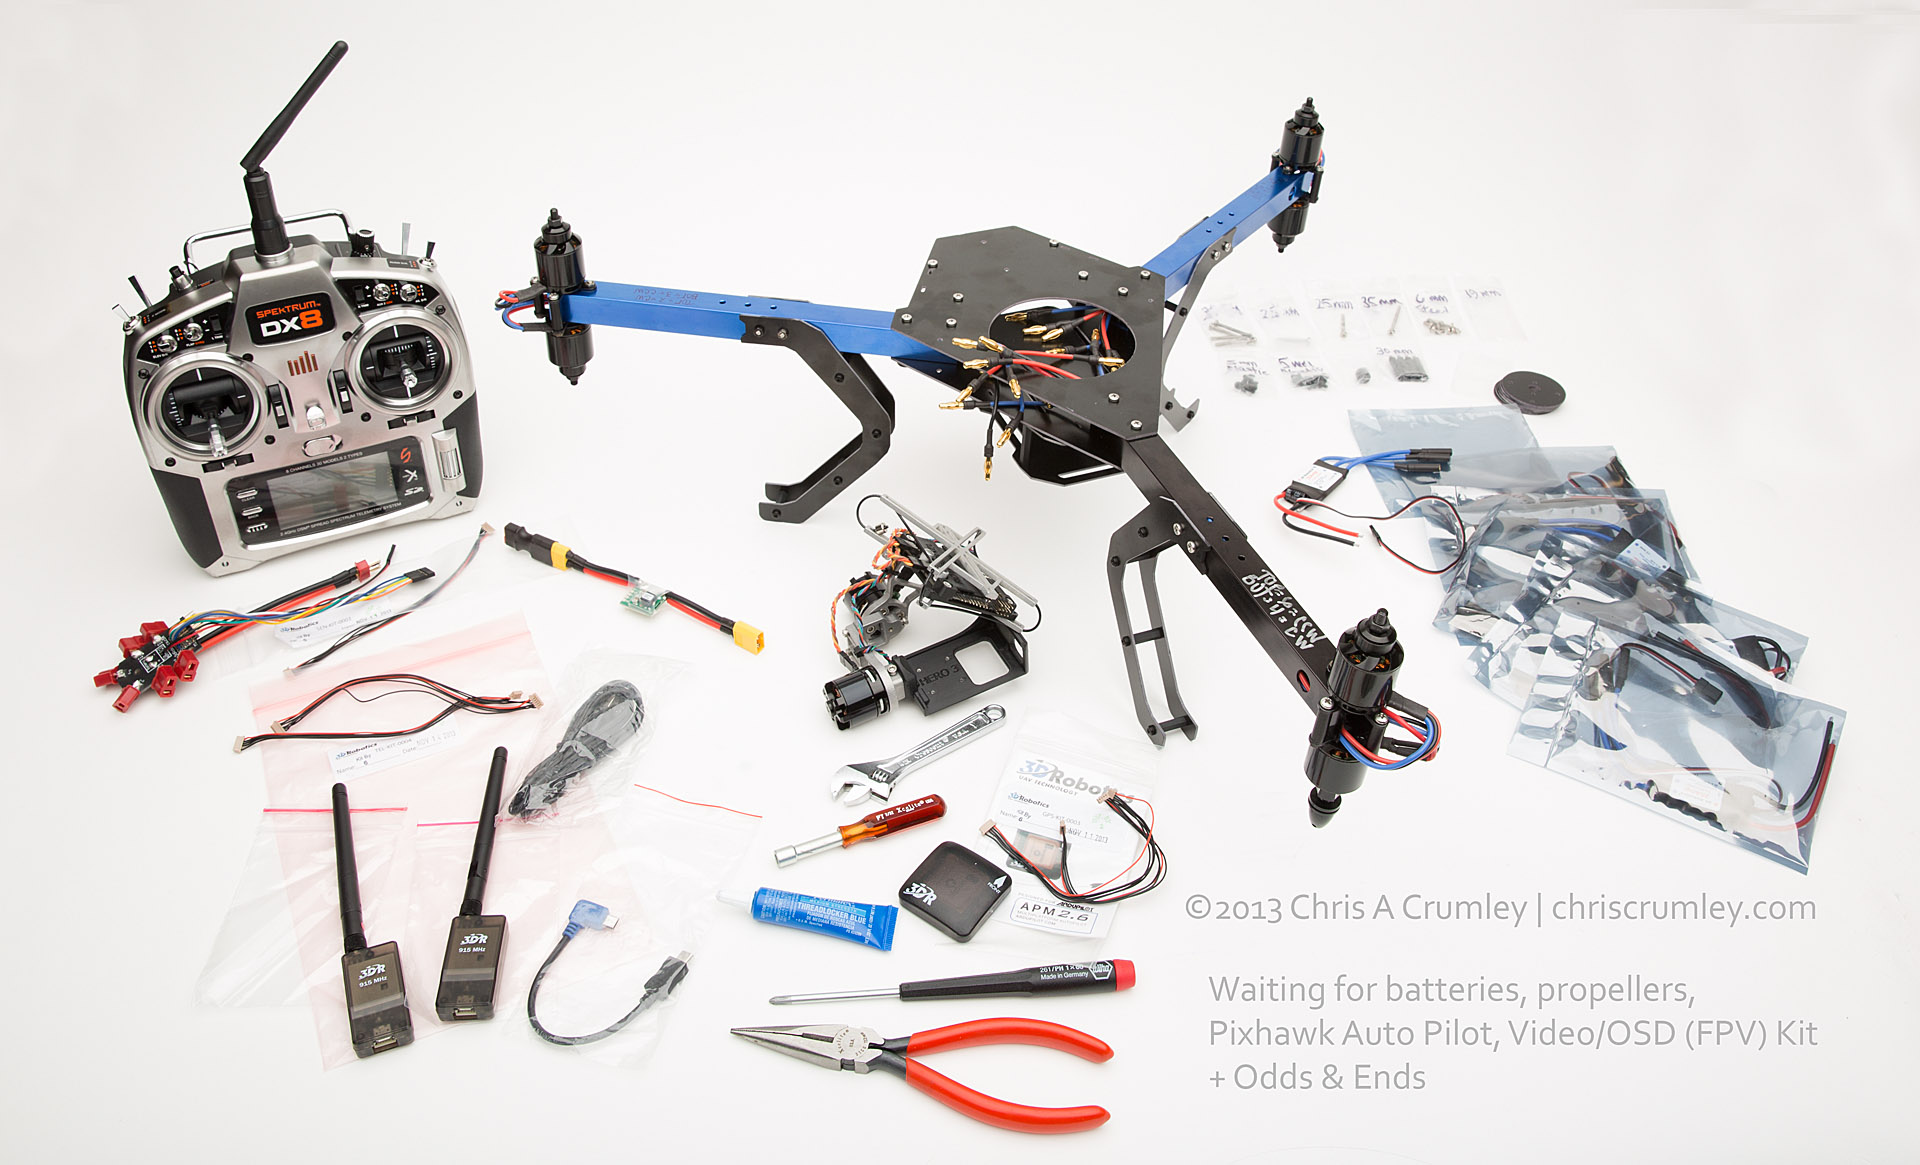 Contruction Project: Build 3D Robotics Y6 Copter/Drone